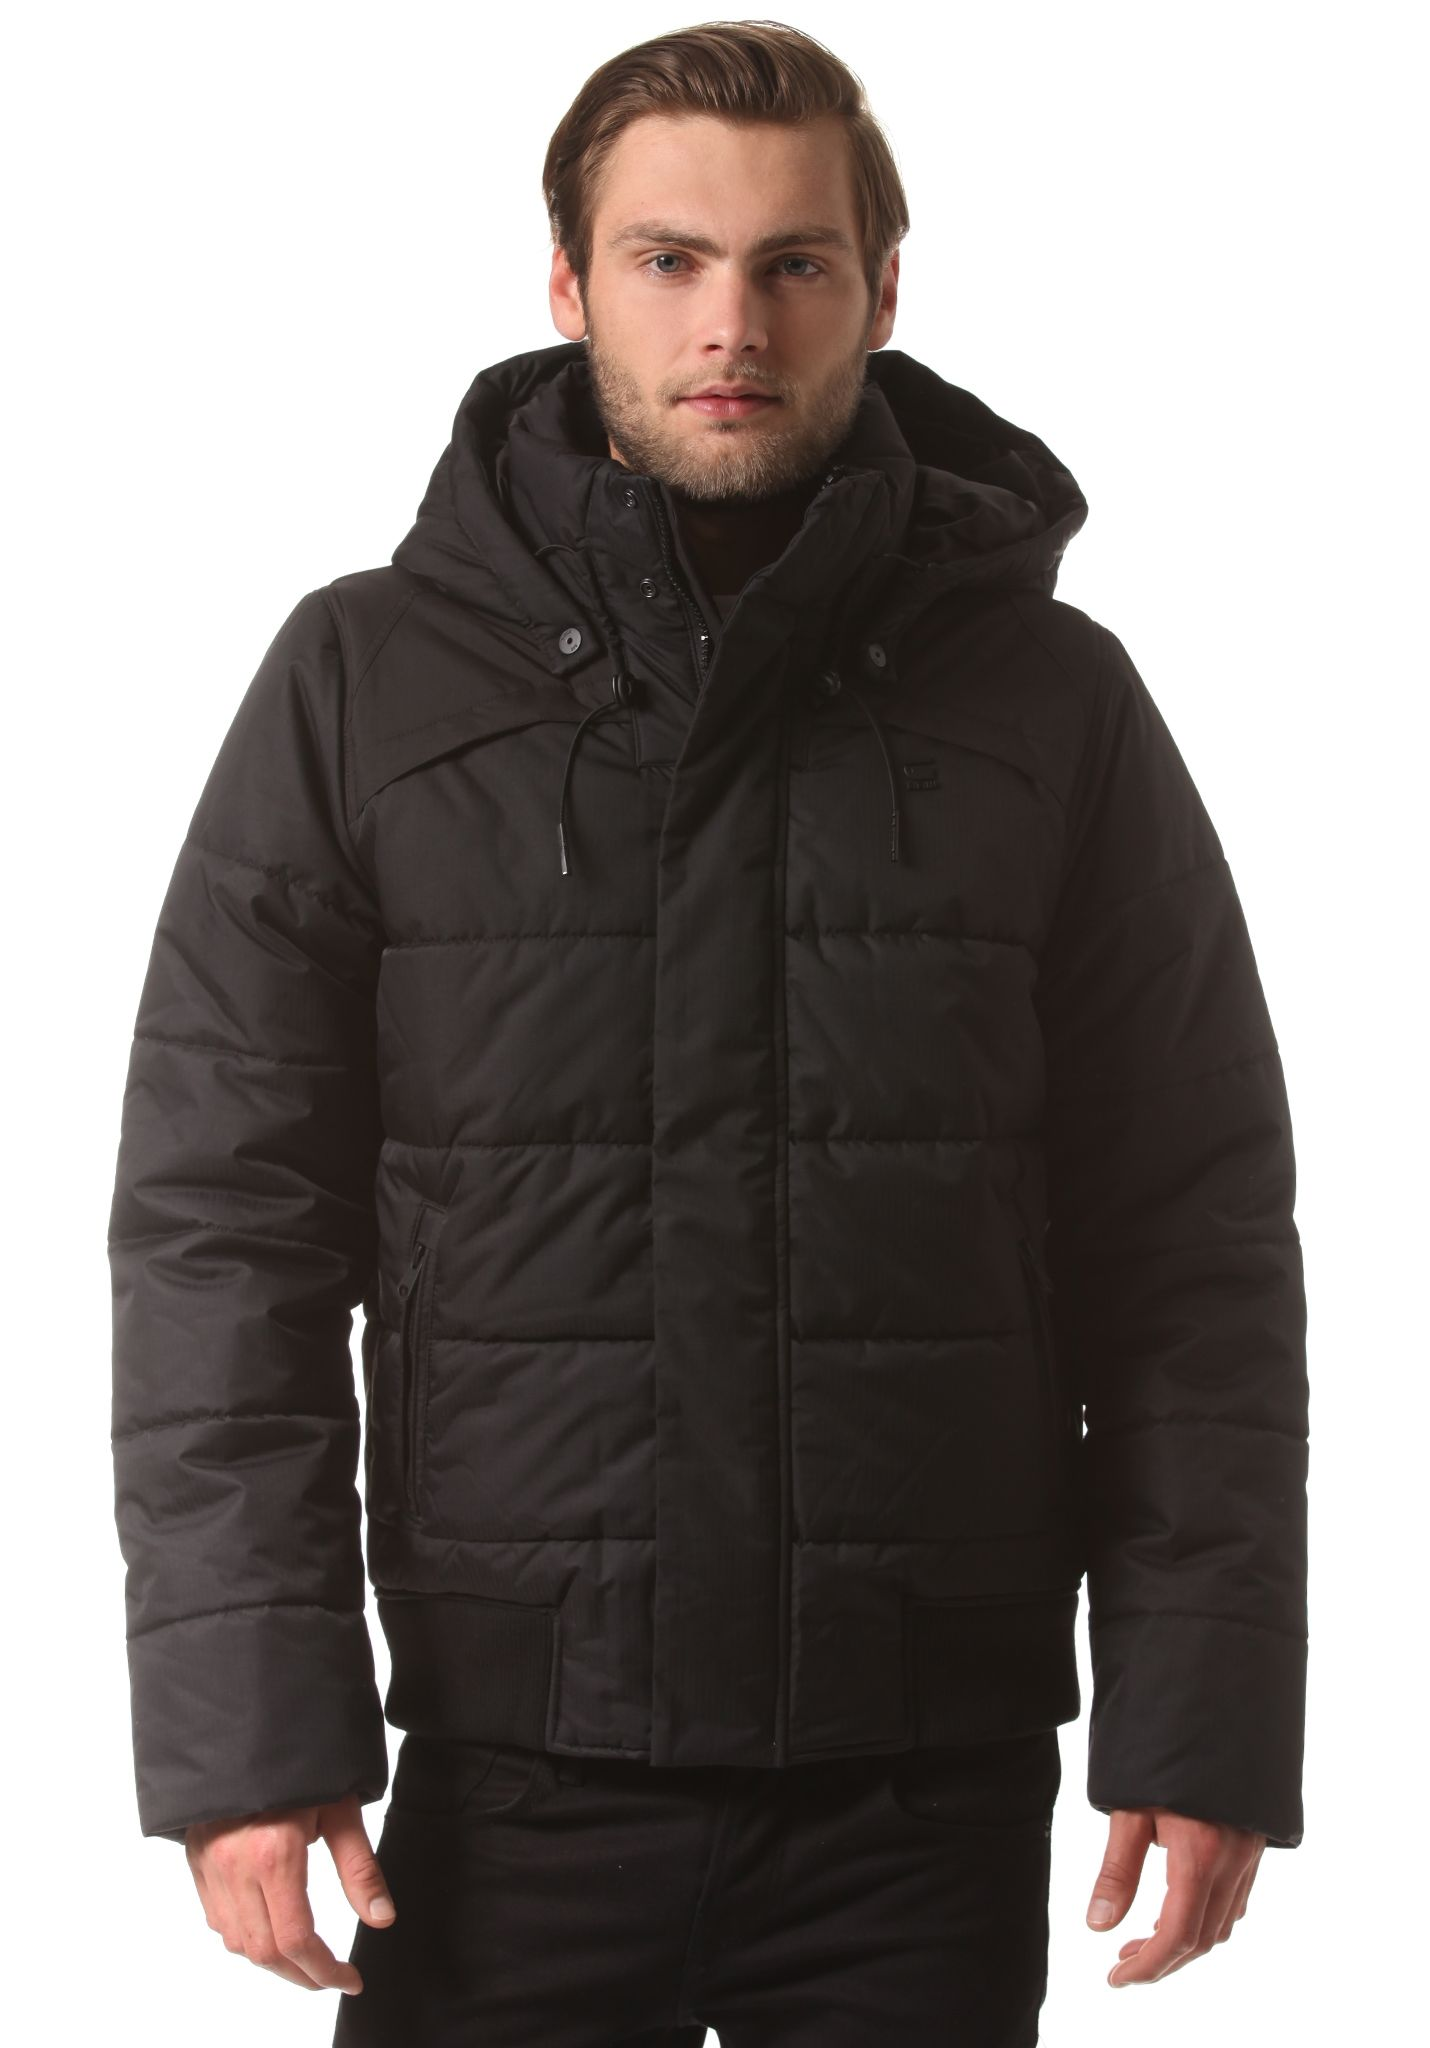 Bomber Star Herren Sports Raw Für Schwarz Jacke Planet G Whistler Hdd x6ZnqqB